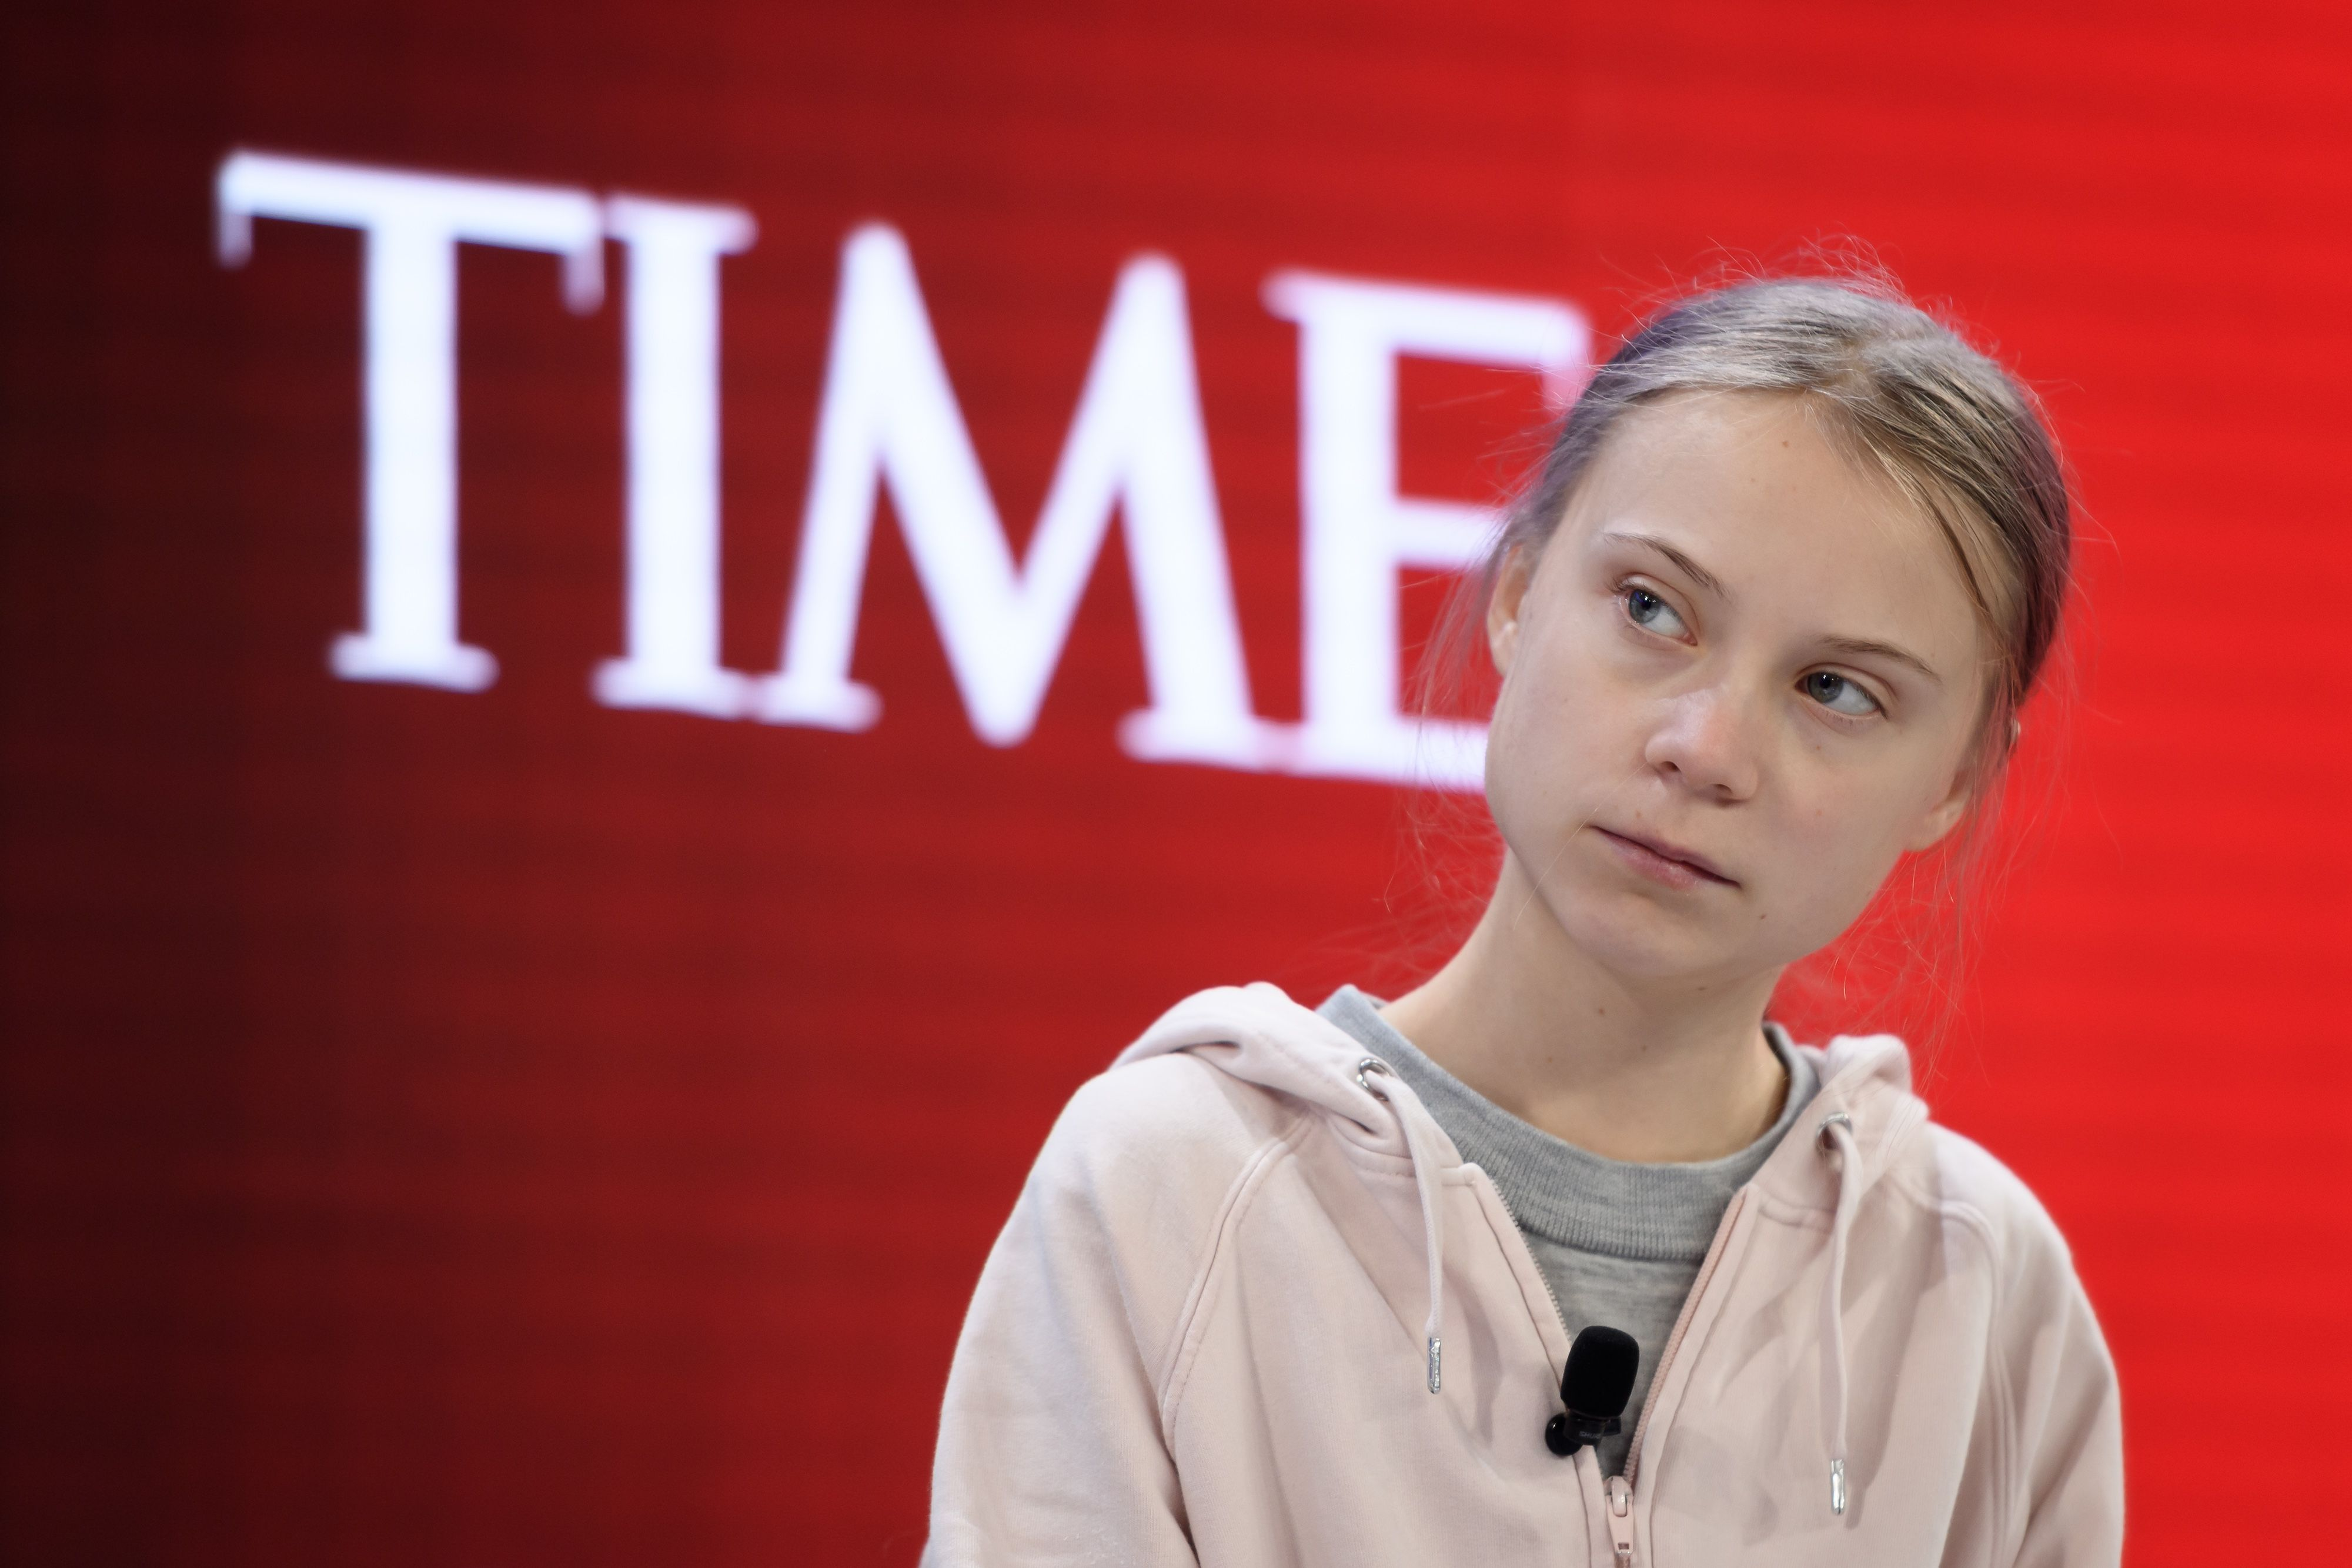 Greta Thunberg at an event for Time Magazine